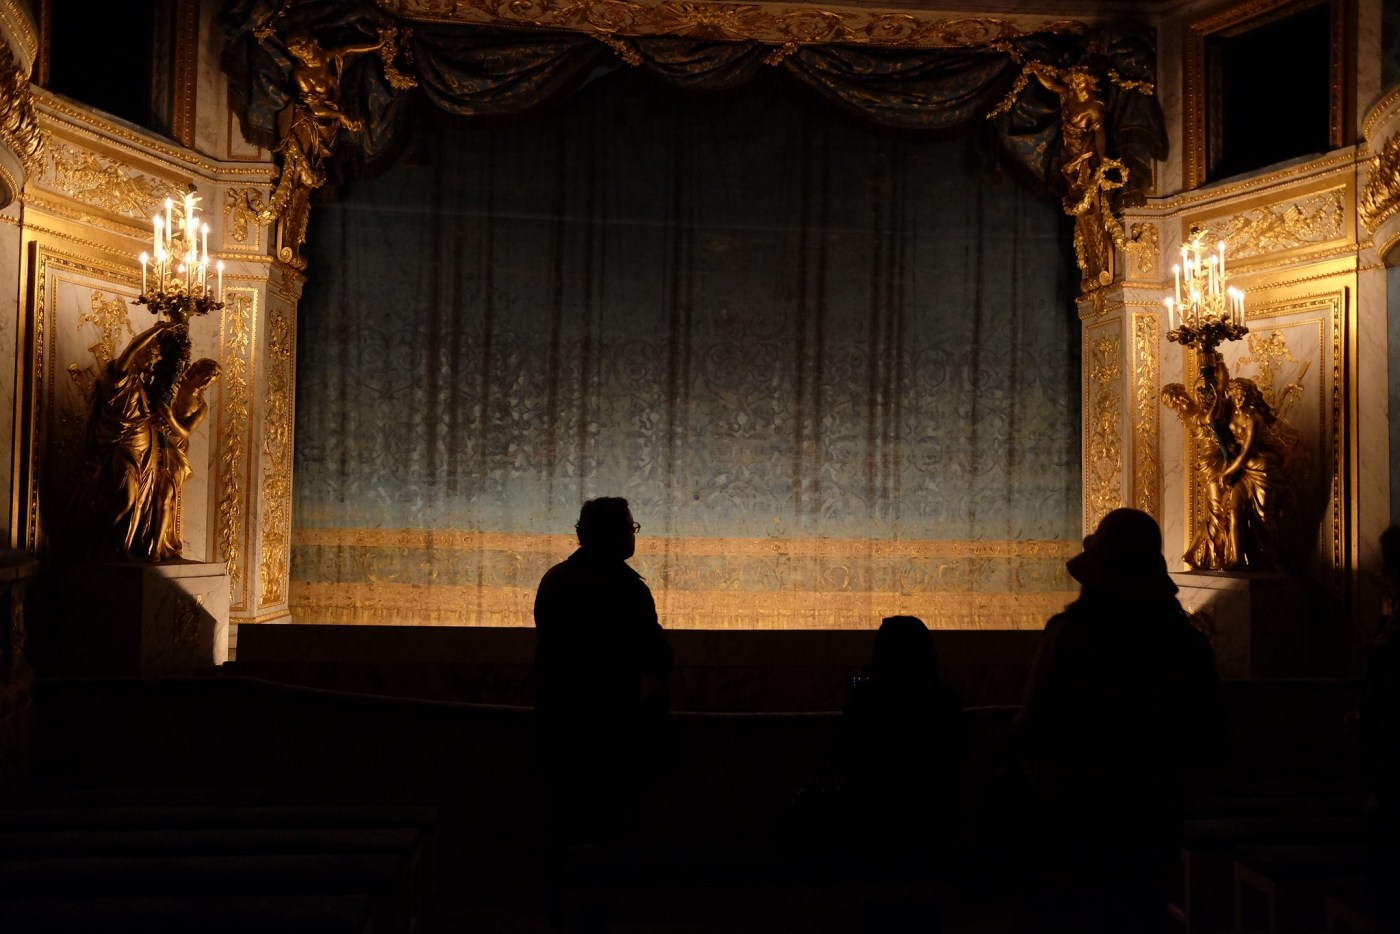 Private theater built for Marie-Antoinette inside the Petit Trianon